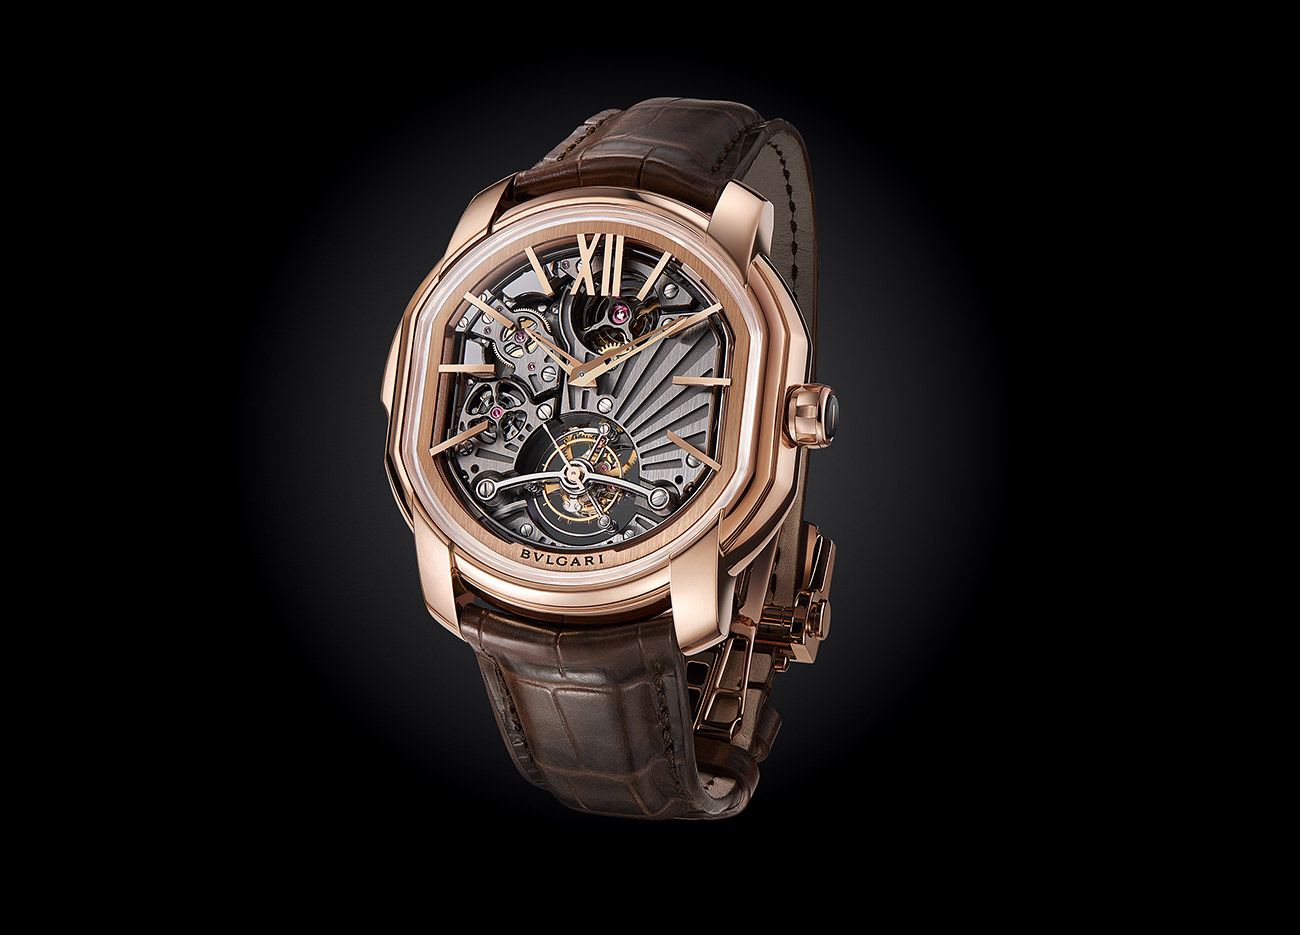 Bulgari-Carillon-Tourbillon-6